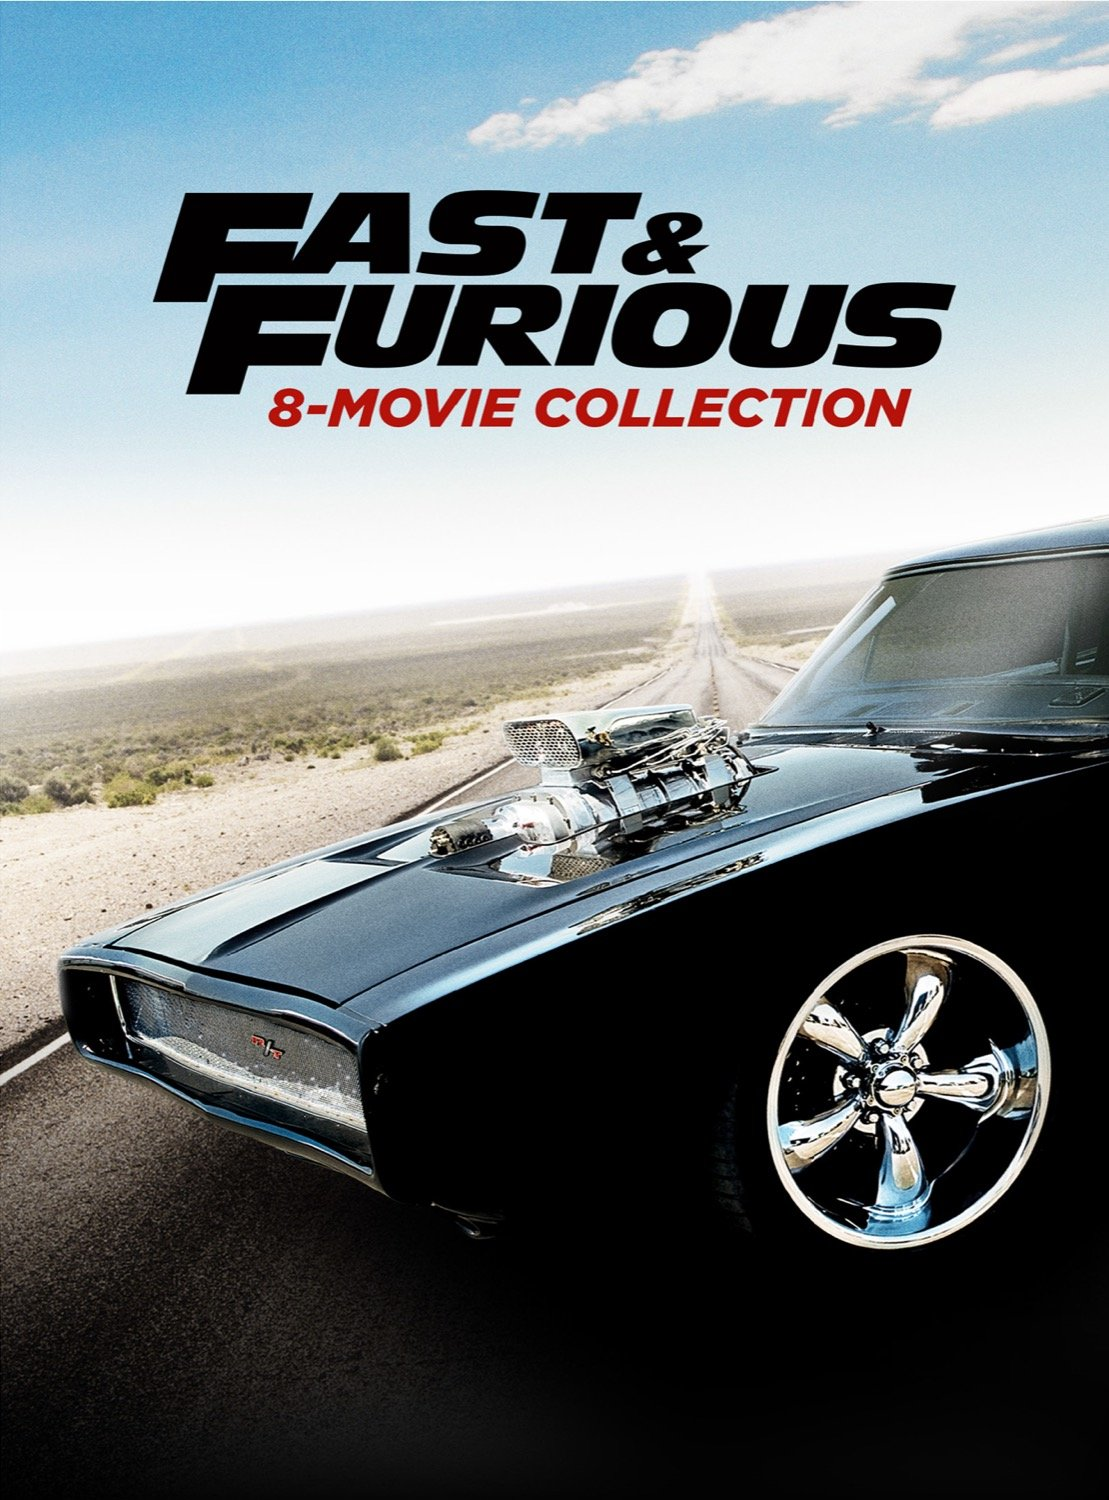 Fast & Furious 8-Movie Collection [ HDX Vudu InstaWatch]